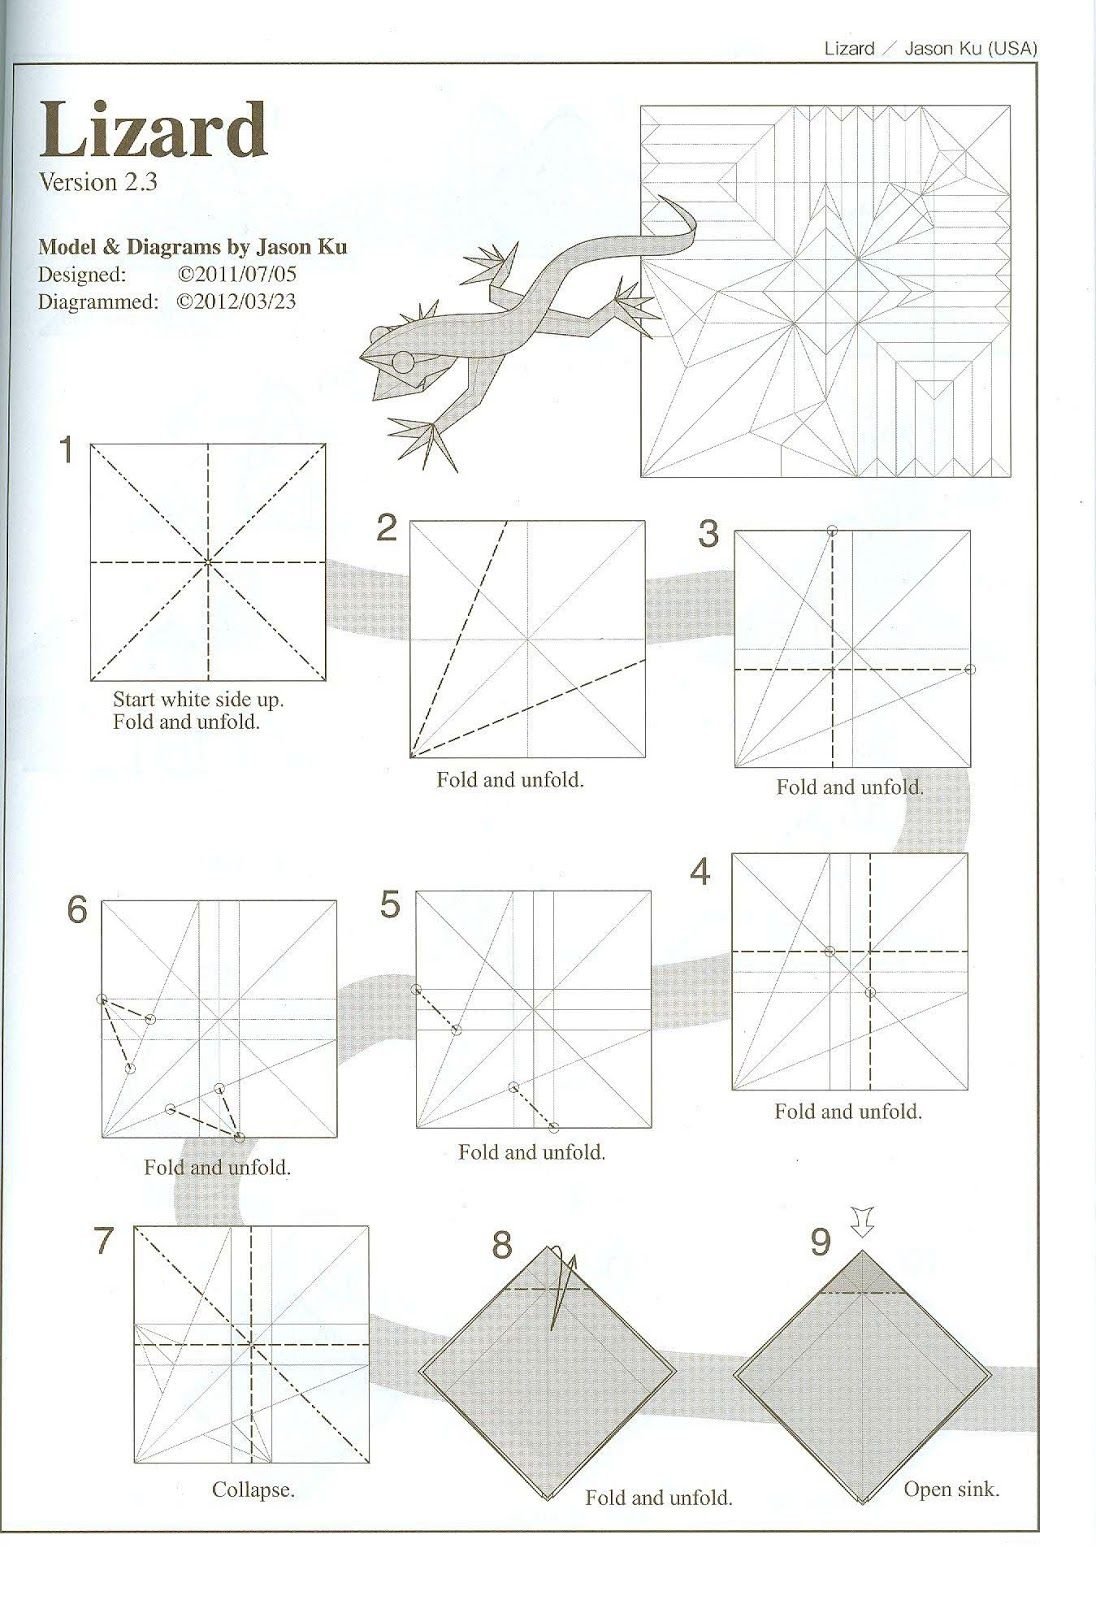 Pin By 家豪 許 On Origami Useful Origami Origami Lizard